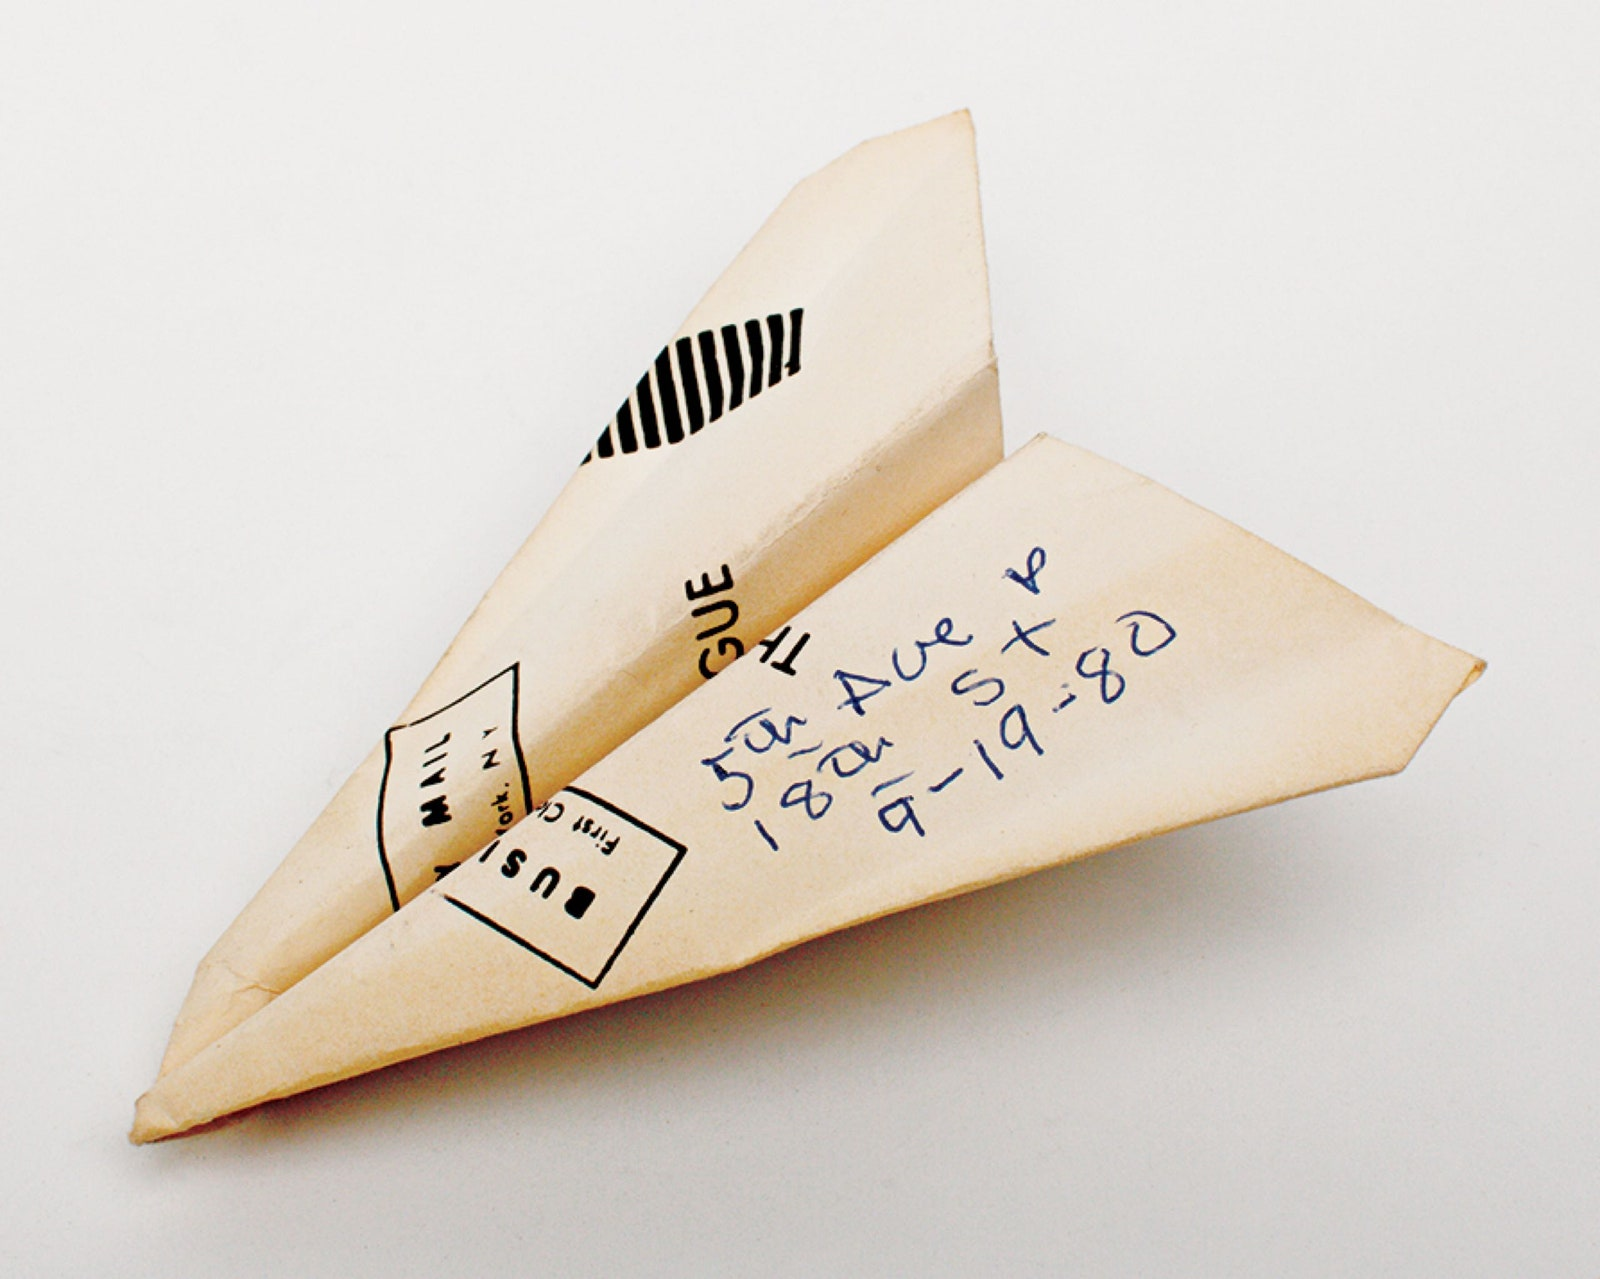 harry-everett-smith-paper-airplane-everythingwithatwist-03